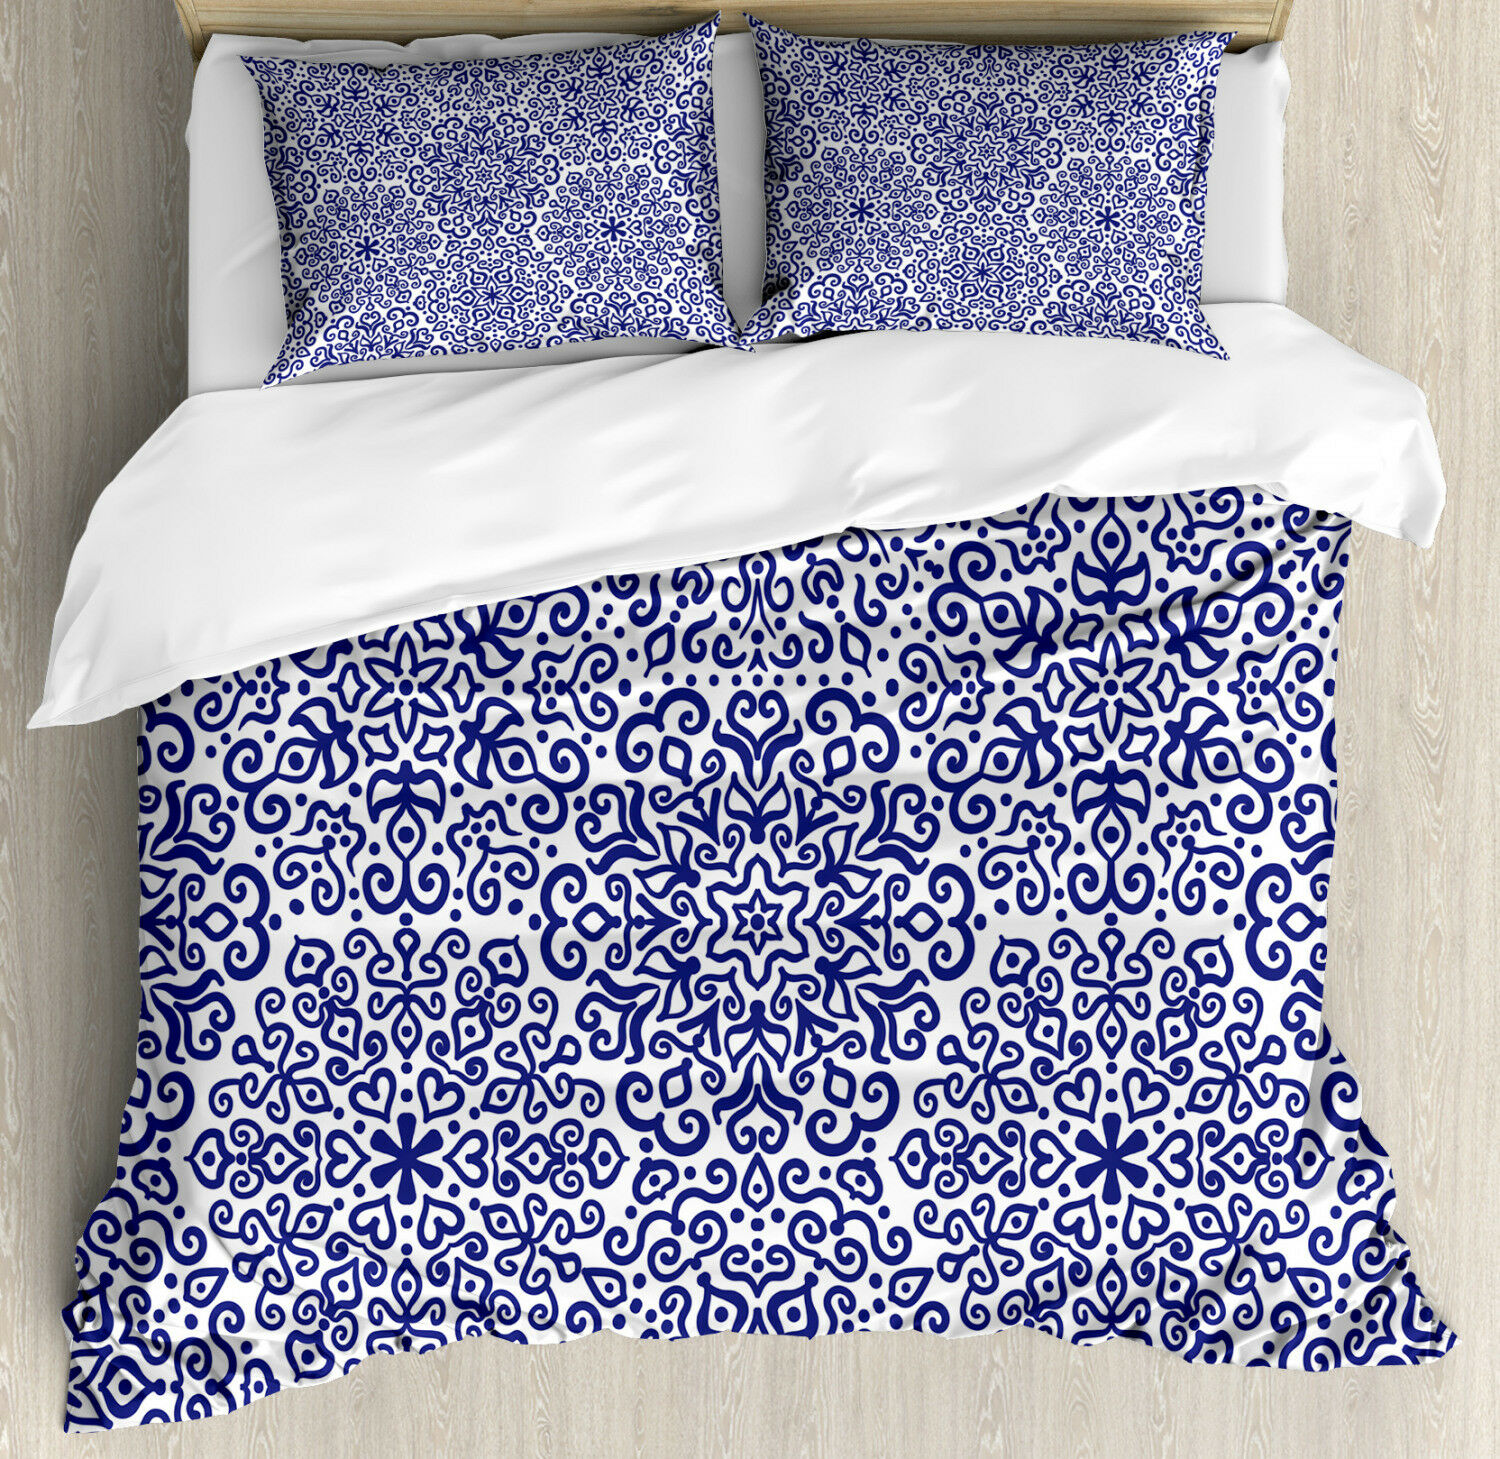 Russian Duvet Cover Set with Pillow Shams Ethnic Blooms Hearts Print